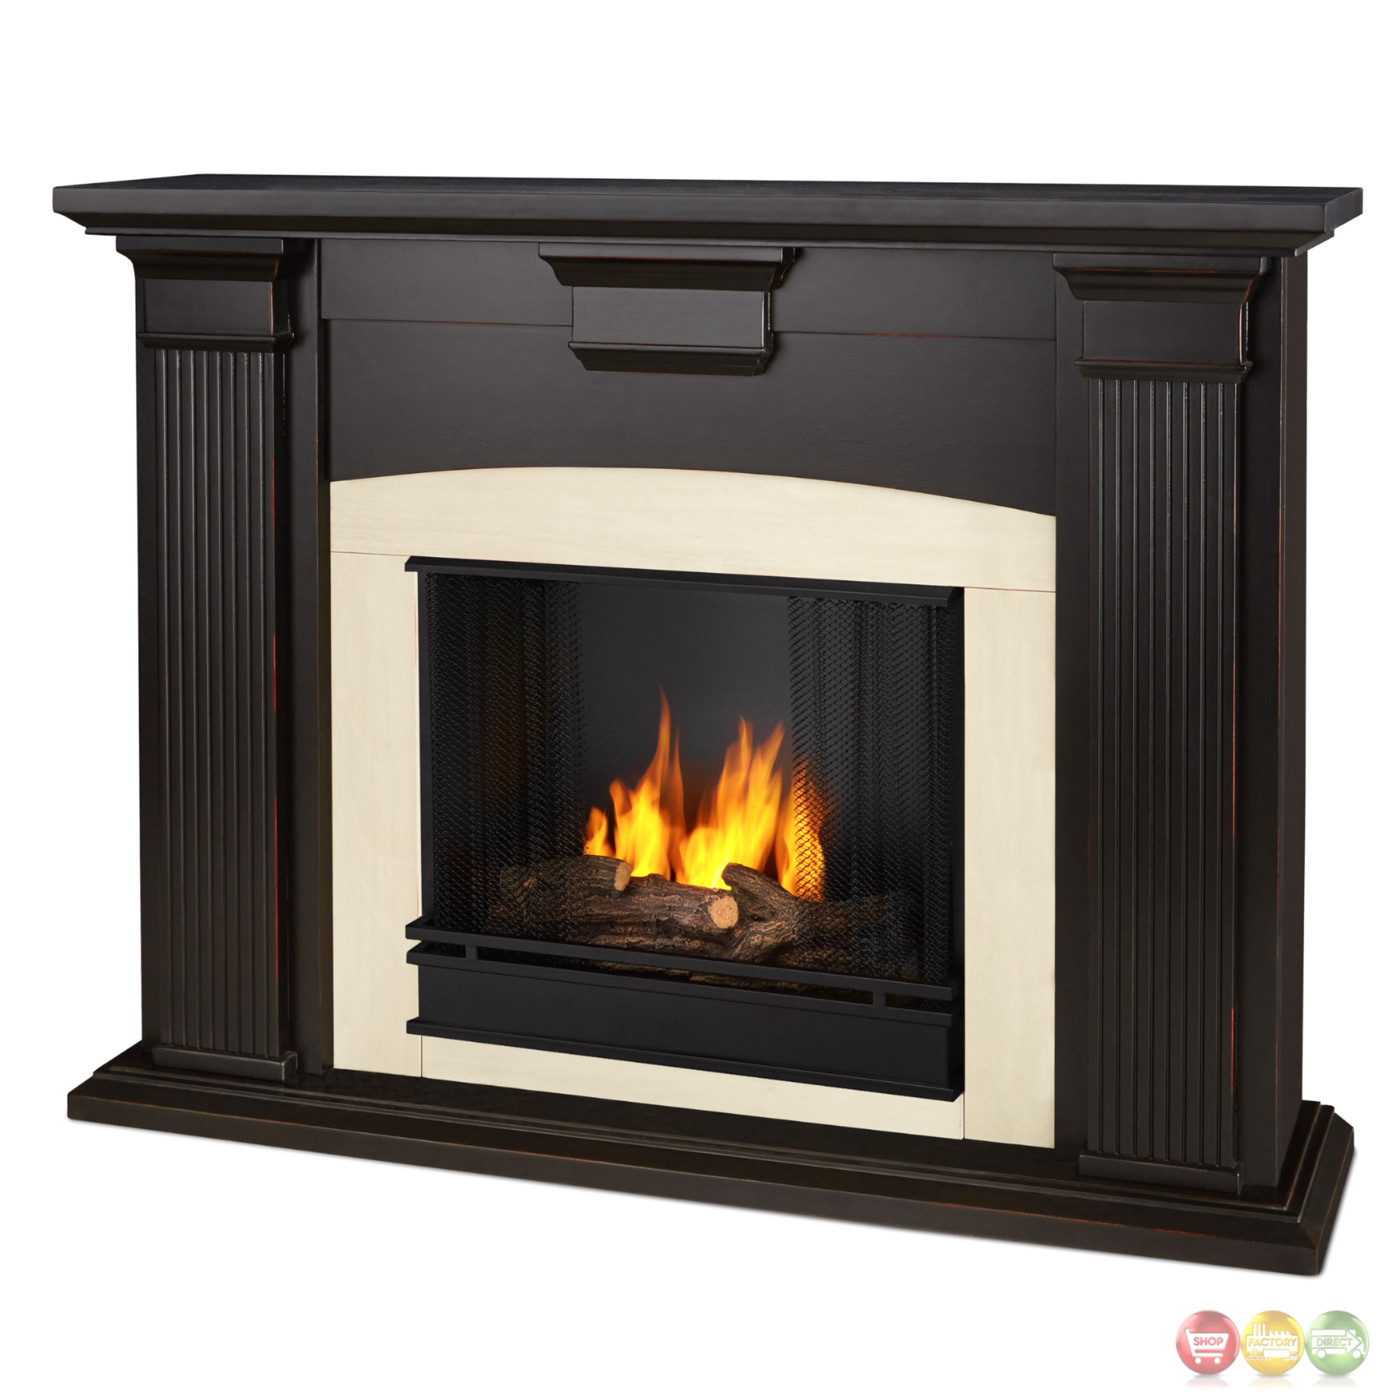 Ventless Fireplace: Adelaide Ventless Gel Fireplace In Antique Blackwash With